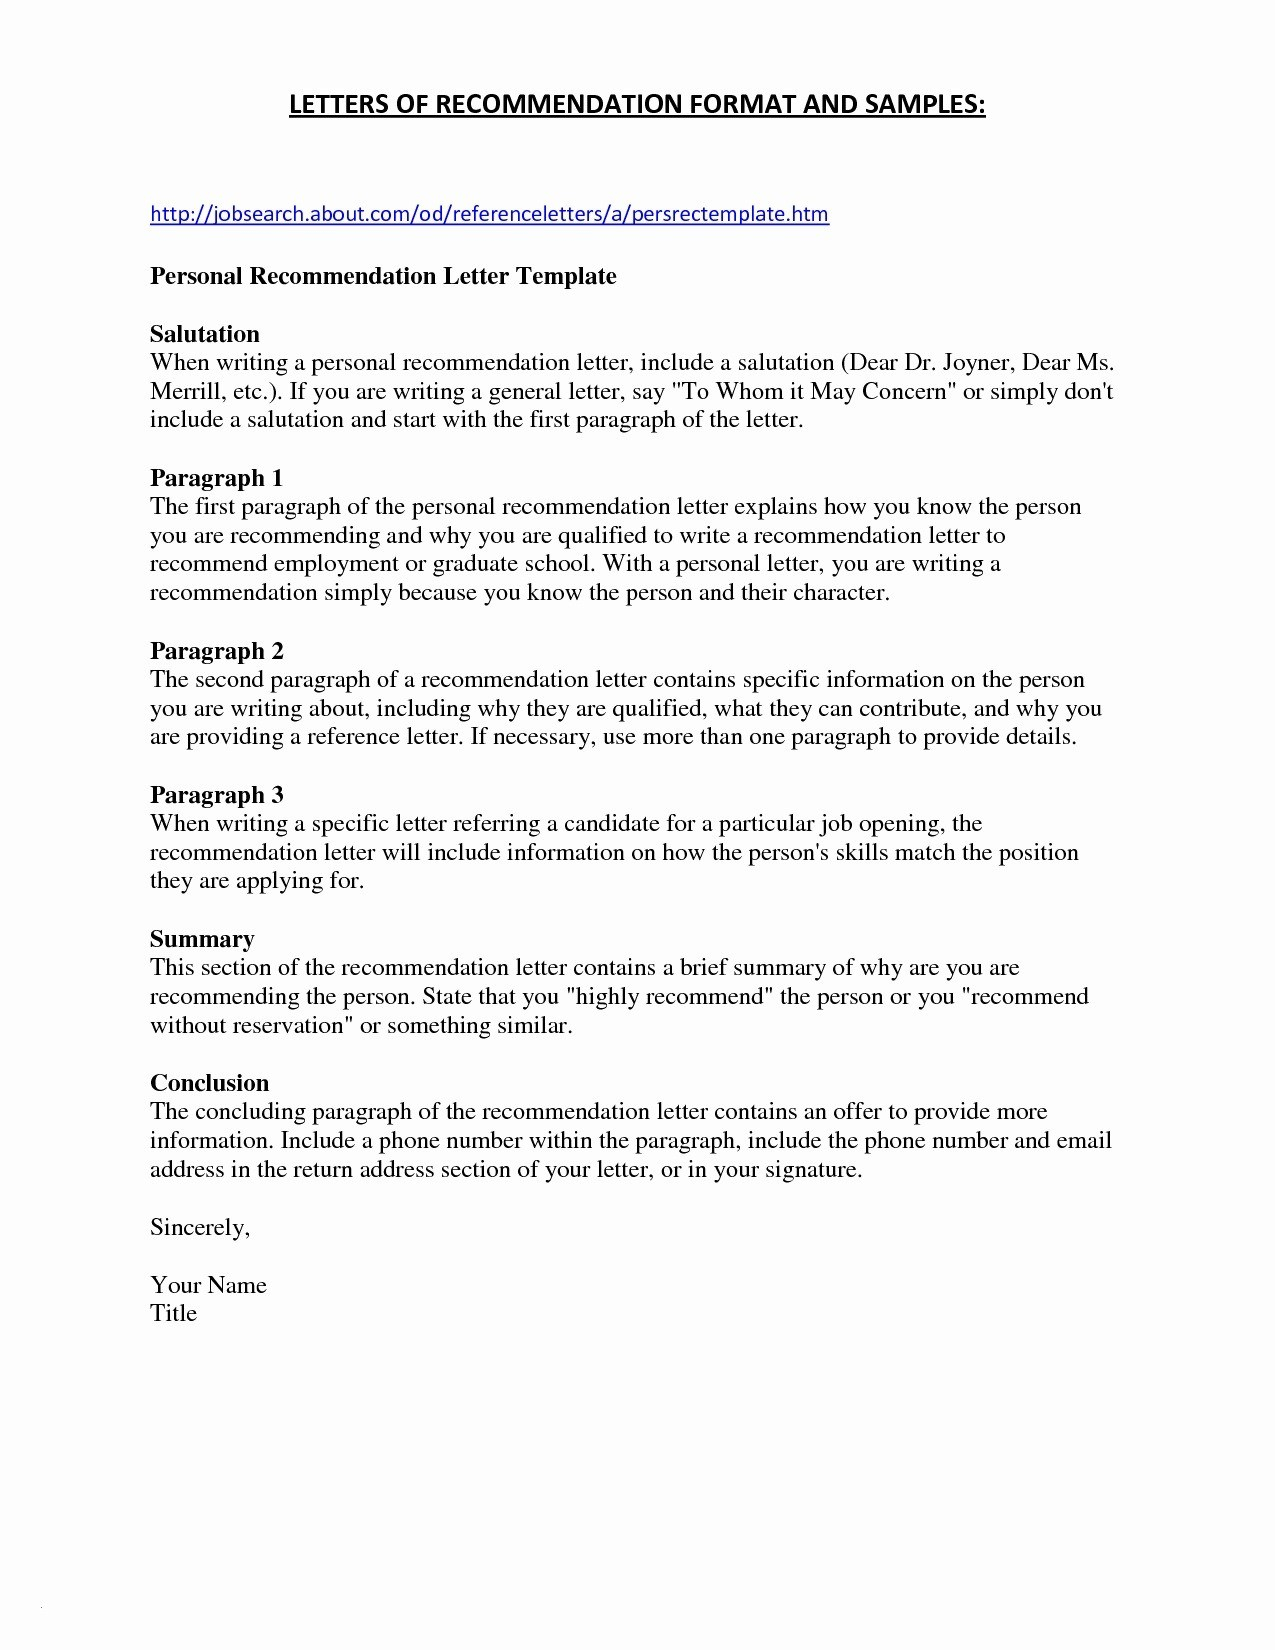 Microsoft Word Letter Of Recommendation Template Samples | Letter ...